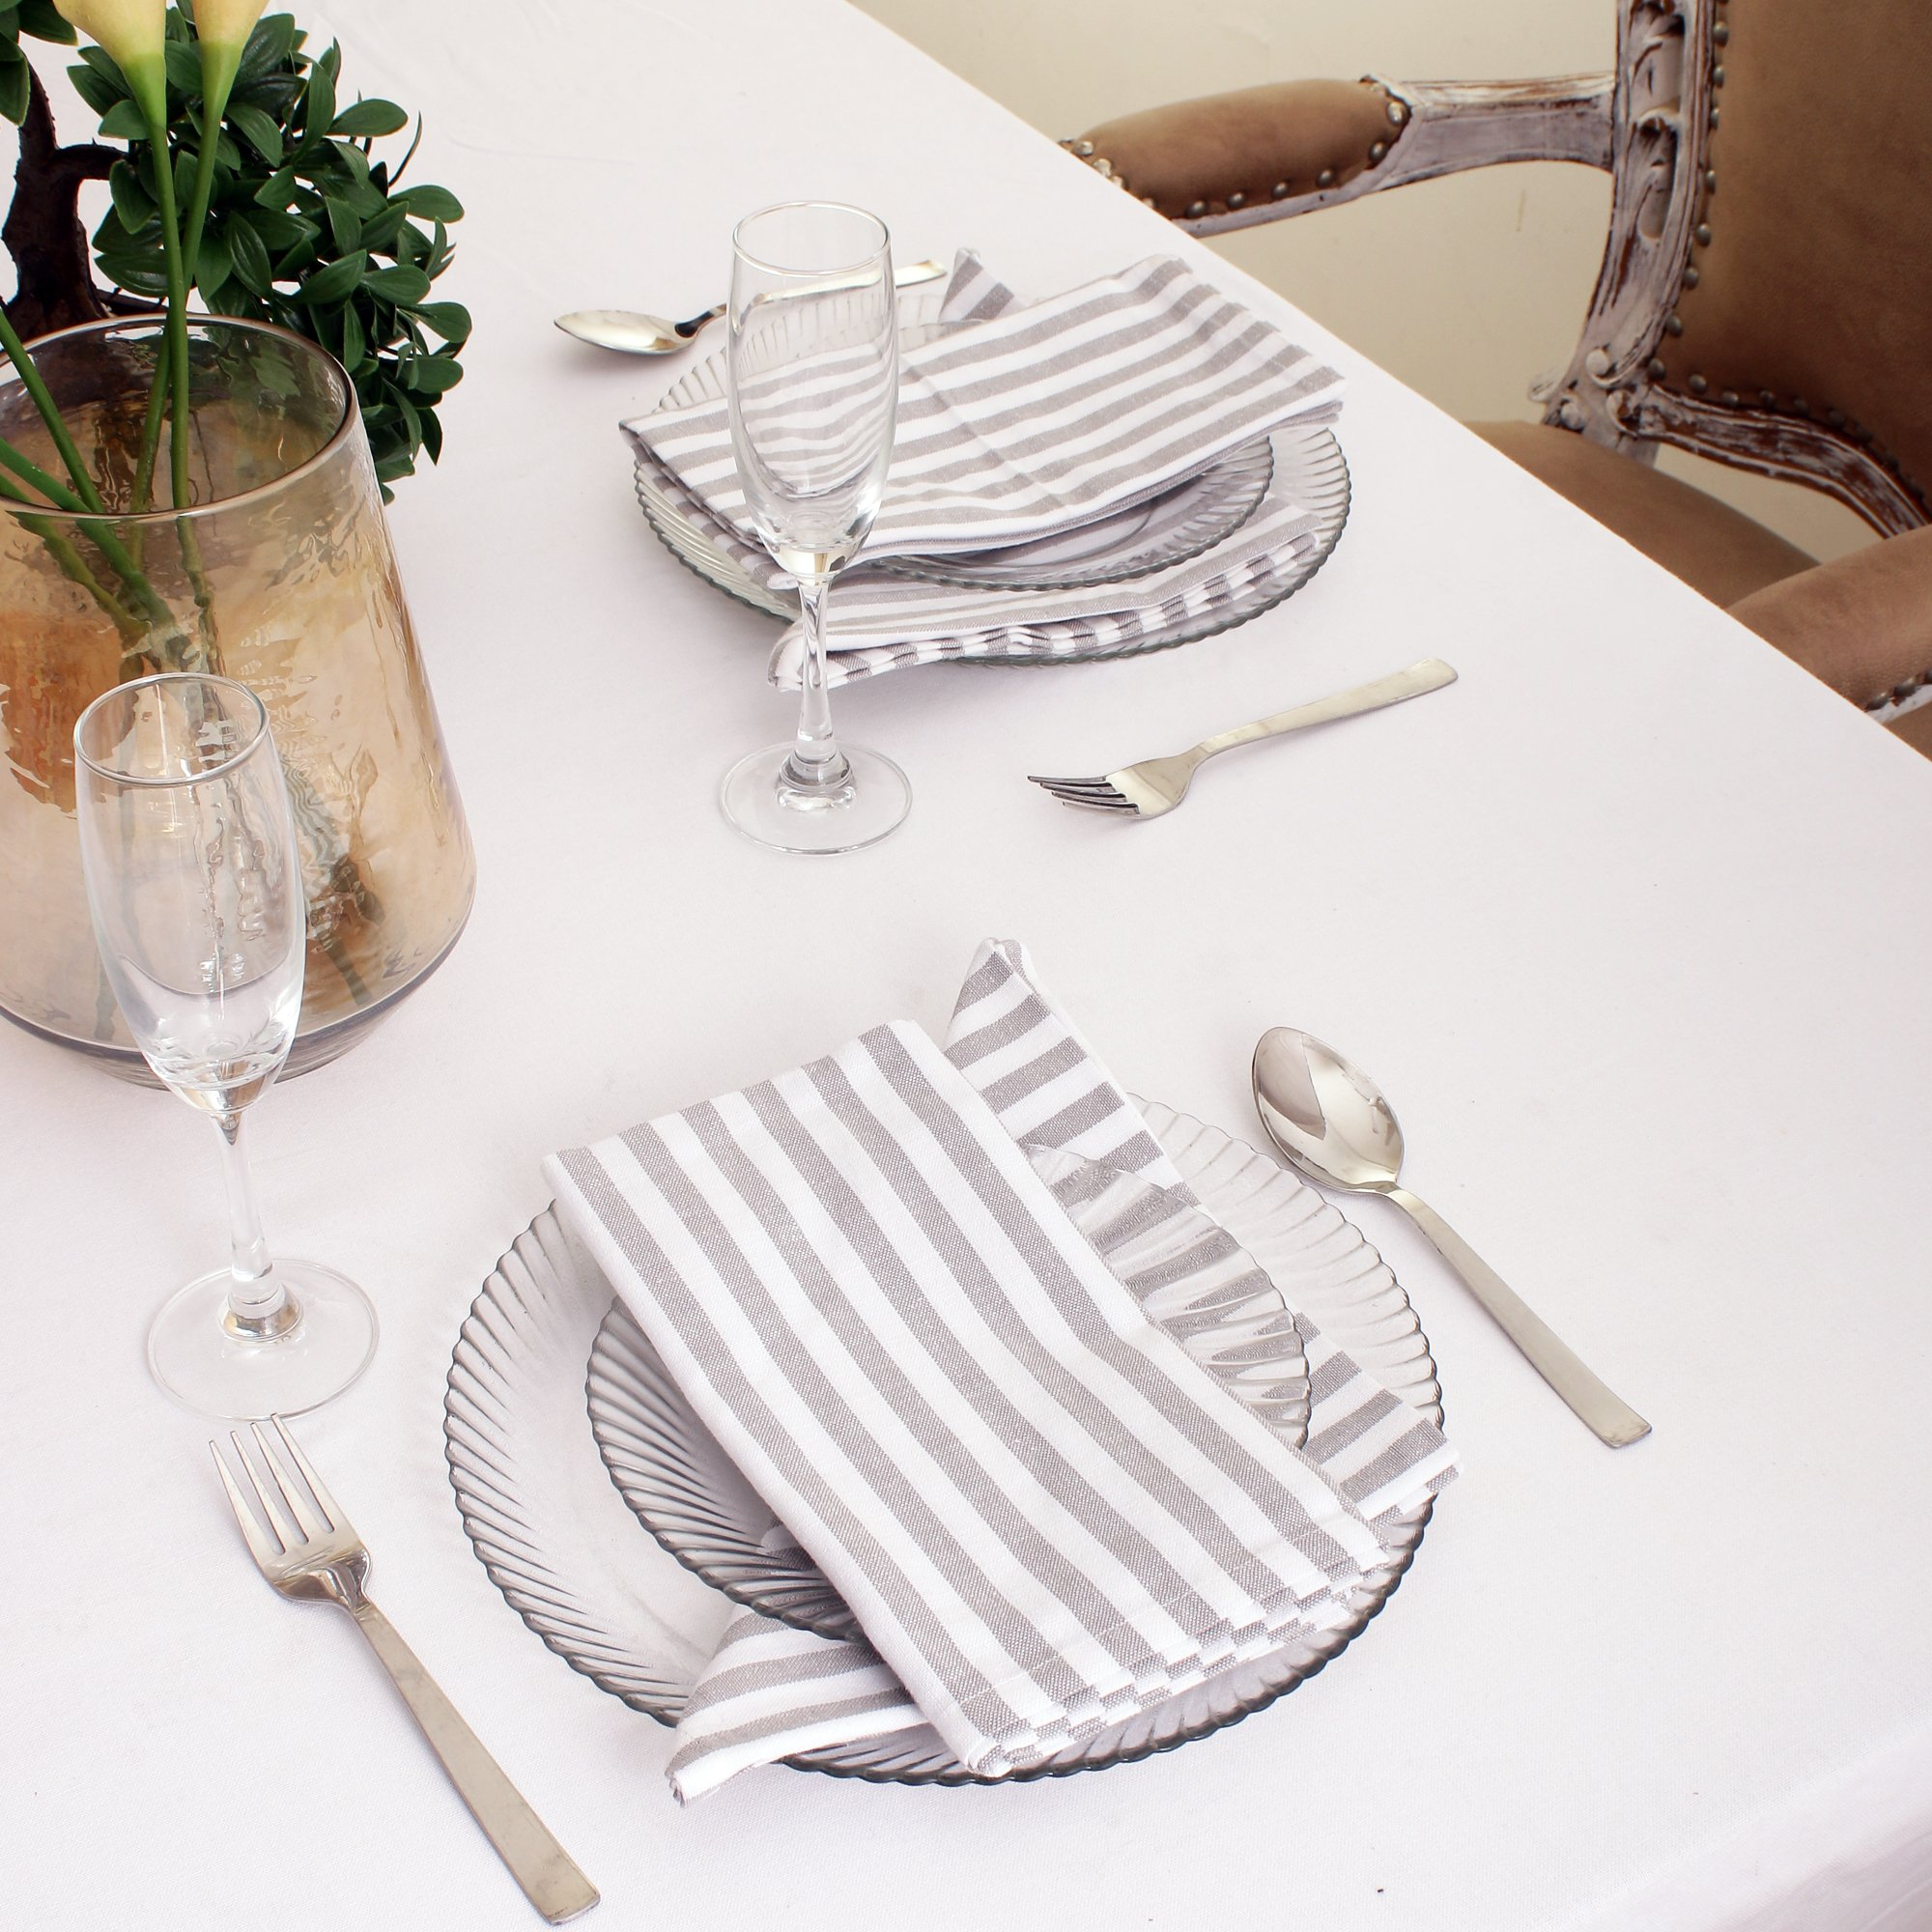 Cotton Dinner Napkins Grey & White Stripe, Set of 12 (20 x 20 Inches), Over Sized, Embroidery And Print, Lint Free, Quick Dry, Hemmed With Mitered Corners